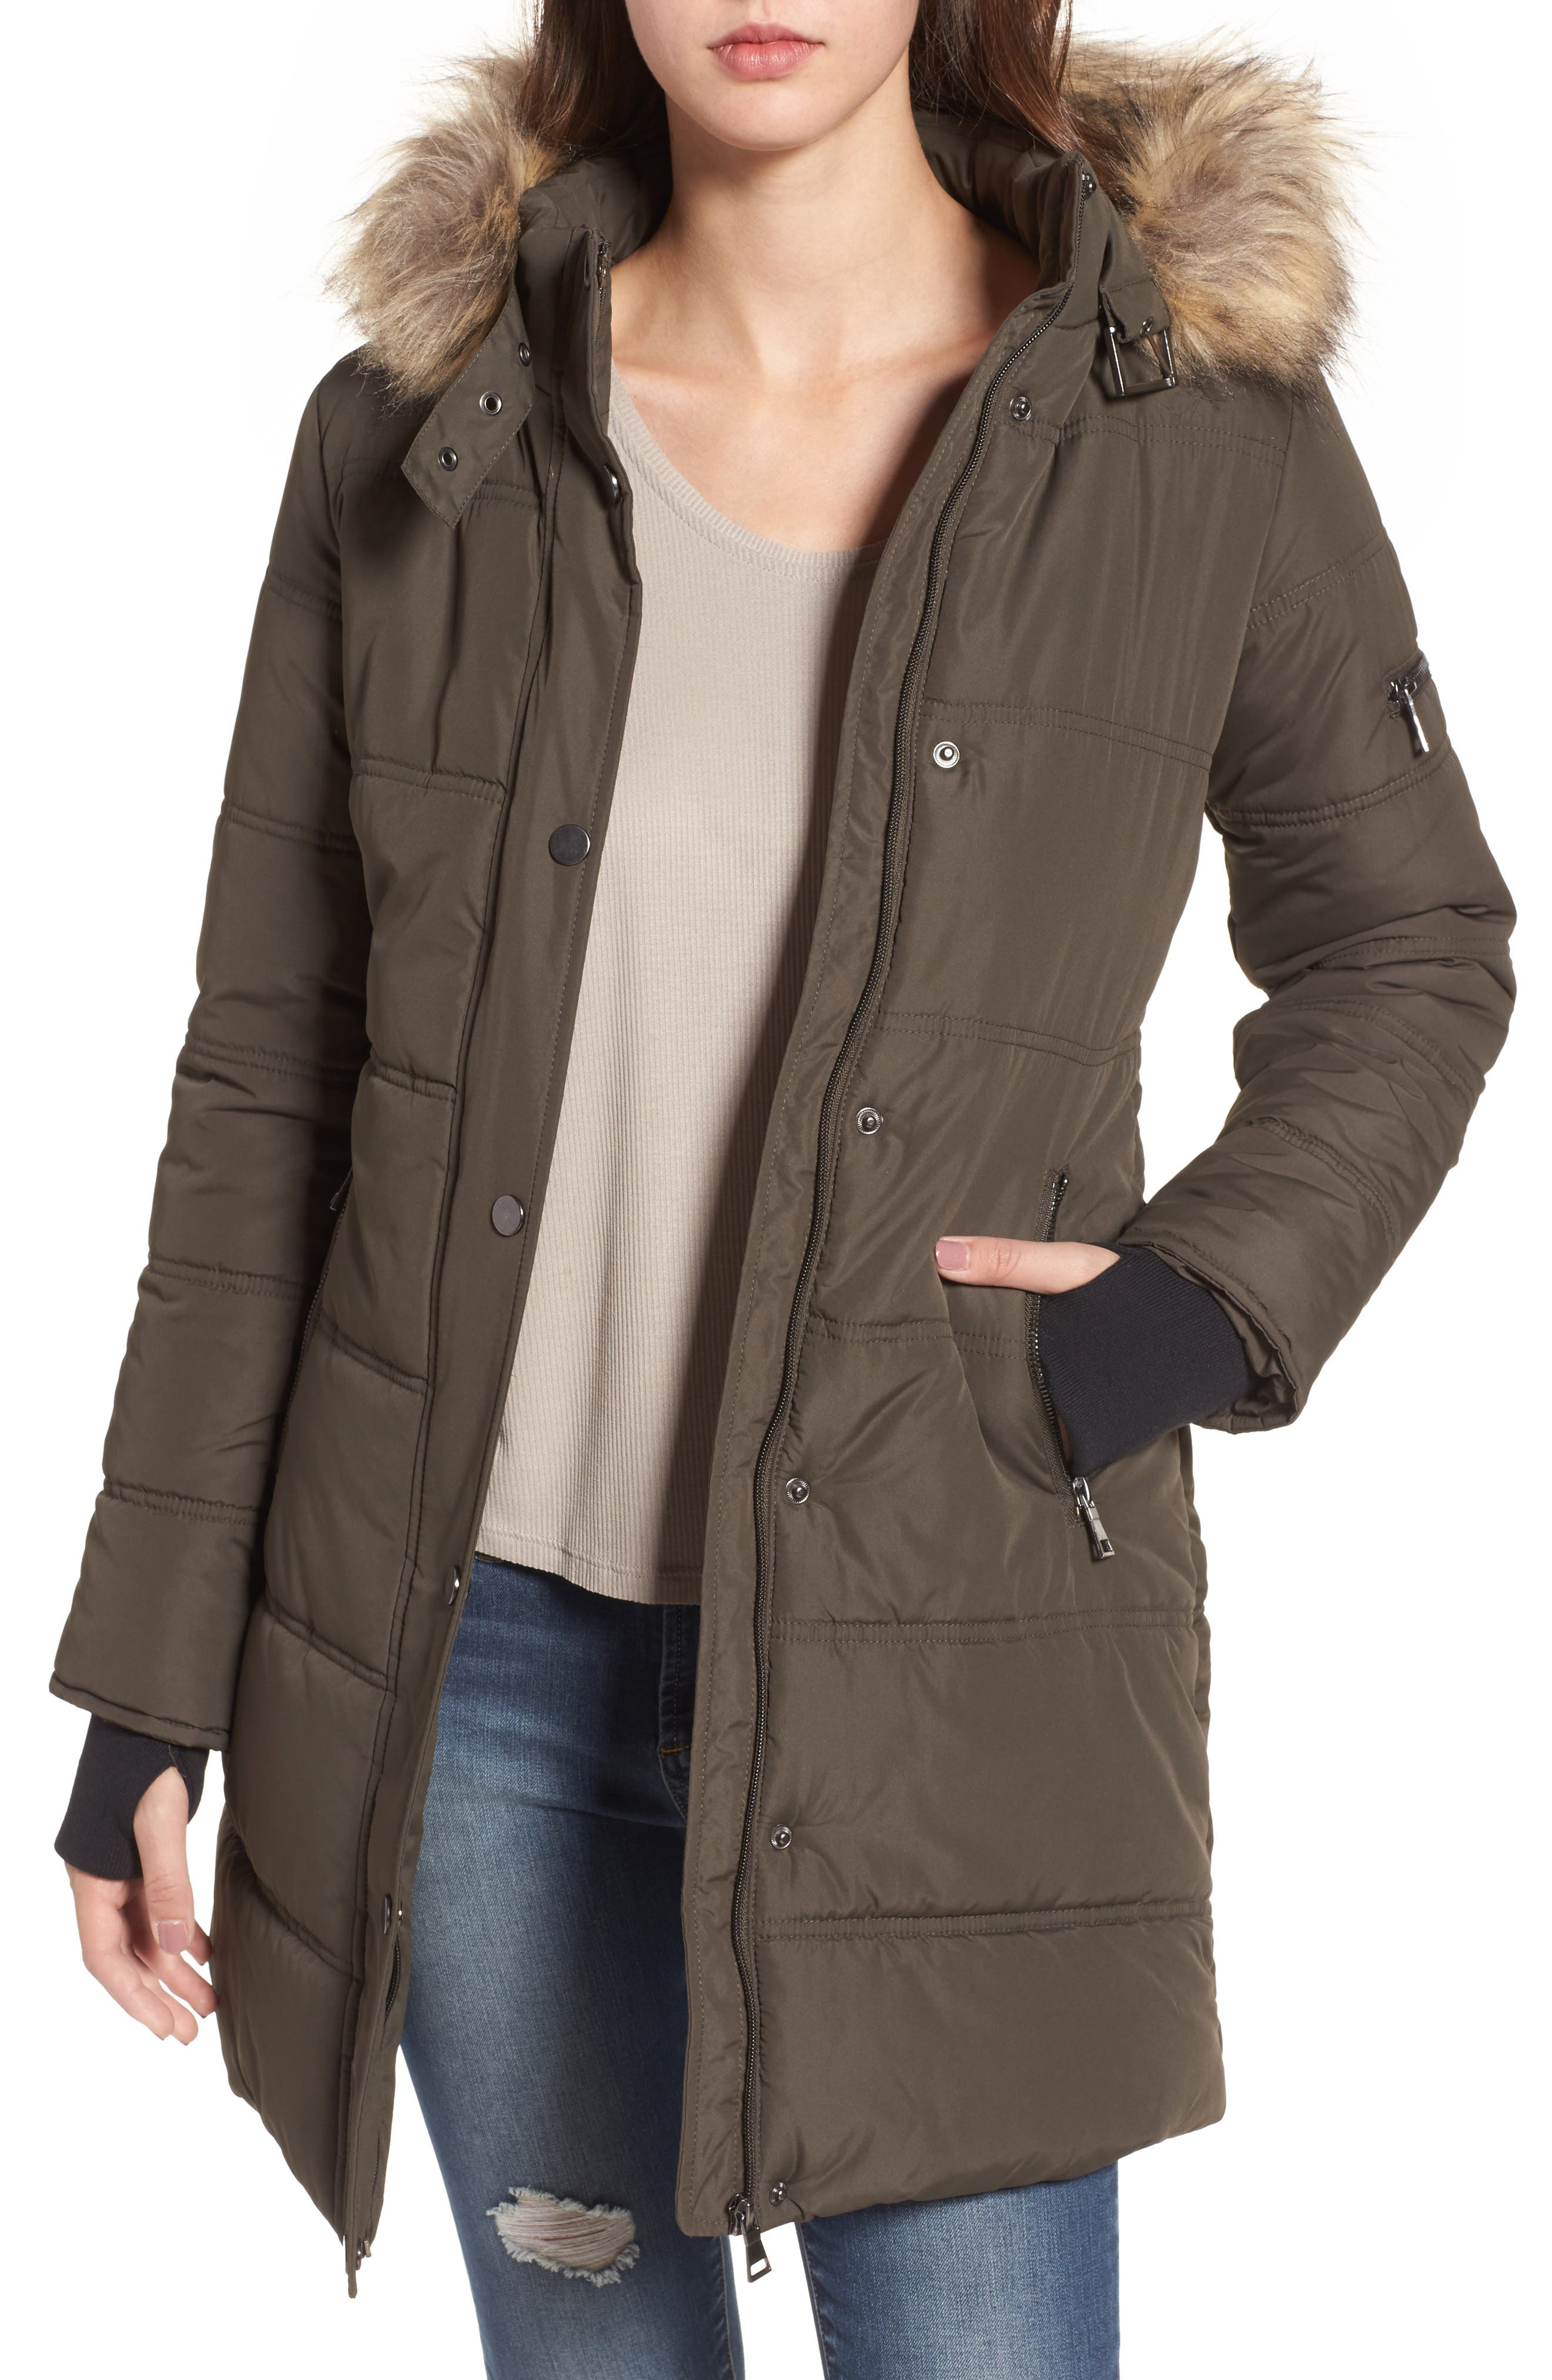 Main Image - Maralyn & Me Faux Fur Trim Hooded Puffer Jacket